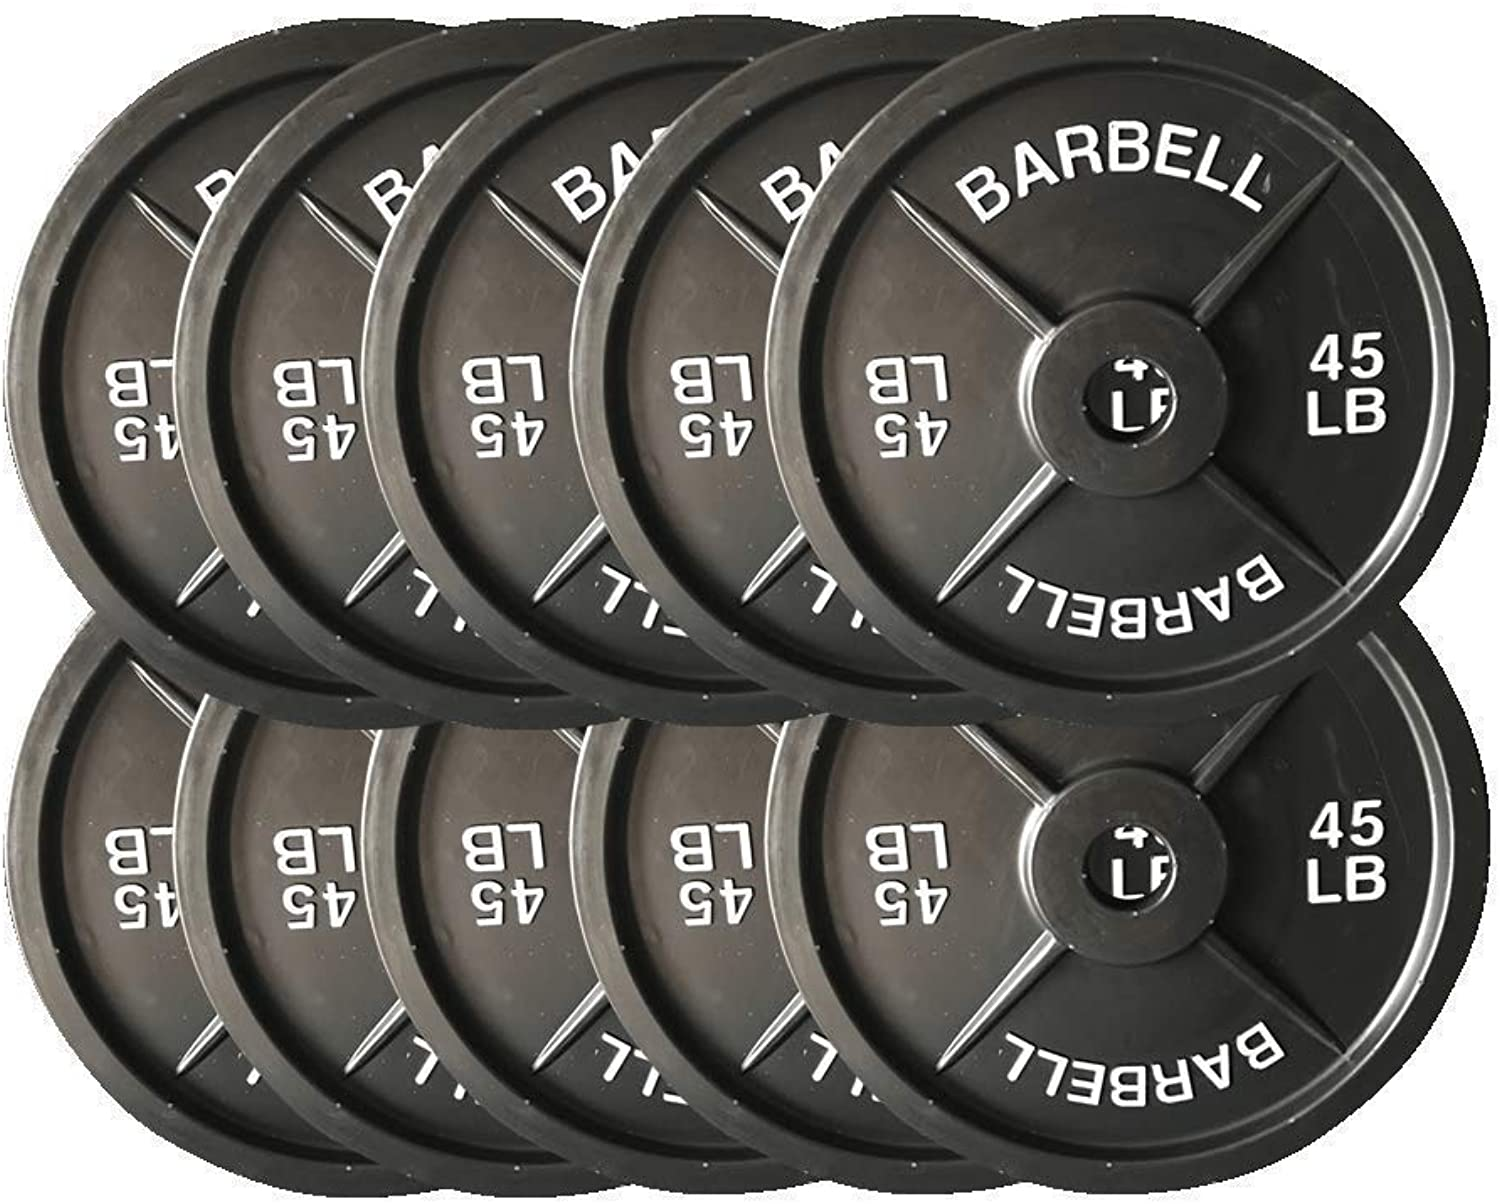 45lb Barbell Plates Fale 5 Pairs